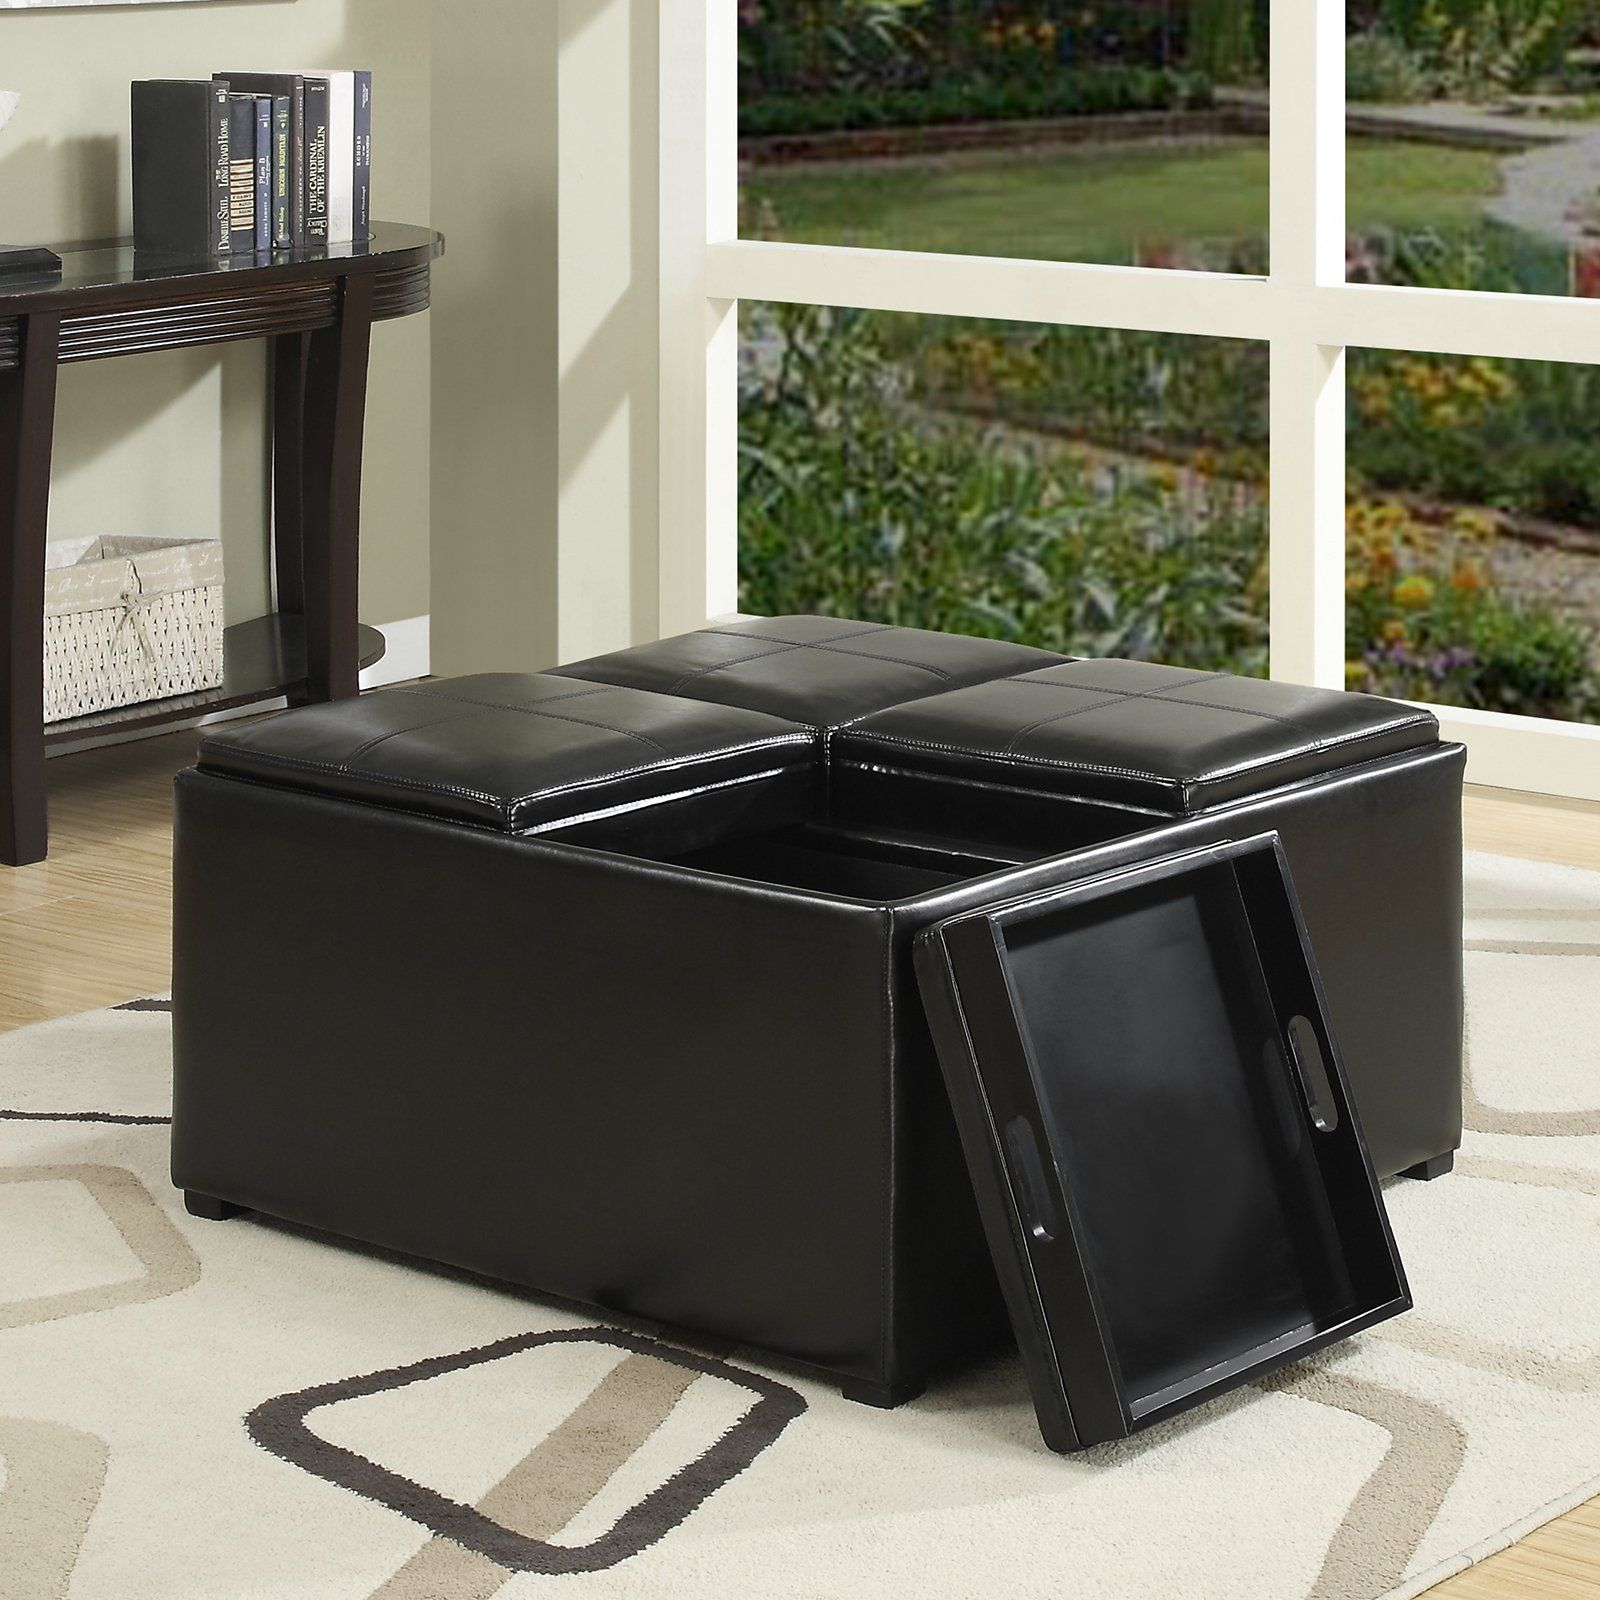 Simpli Home Avalon Faux Leather Coffee Table Storage Ottoman | from ...